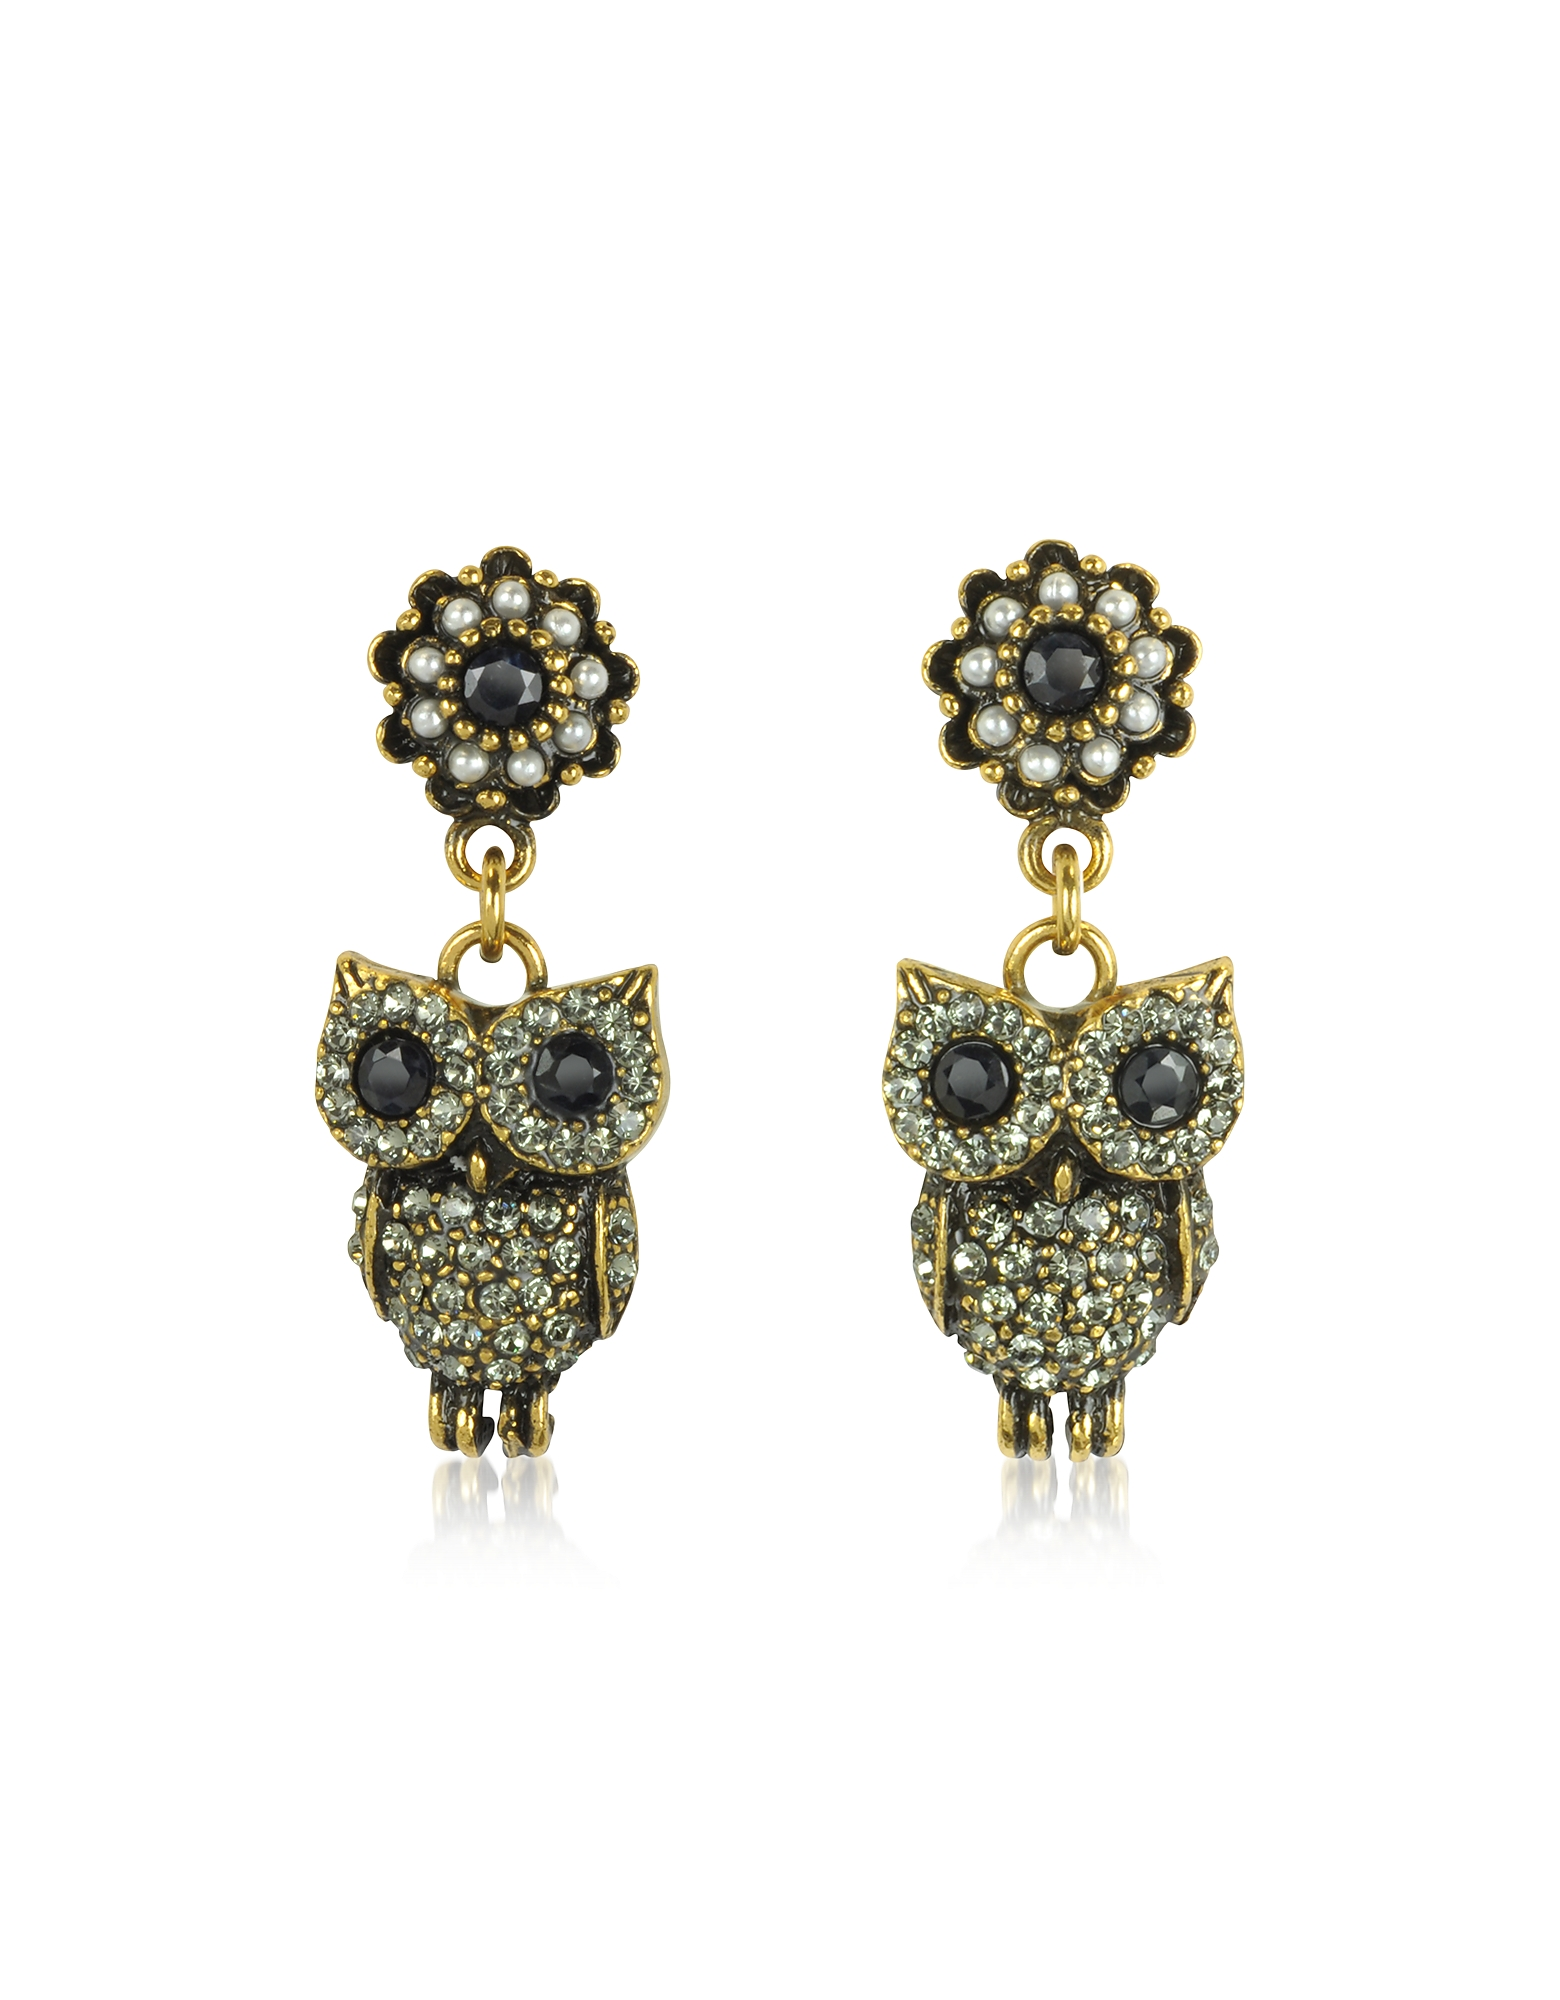 Hanging Goldtone Brass w/Crystals Drop Earrings от Forzieri.com INT